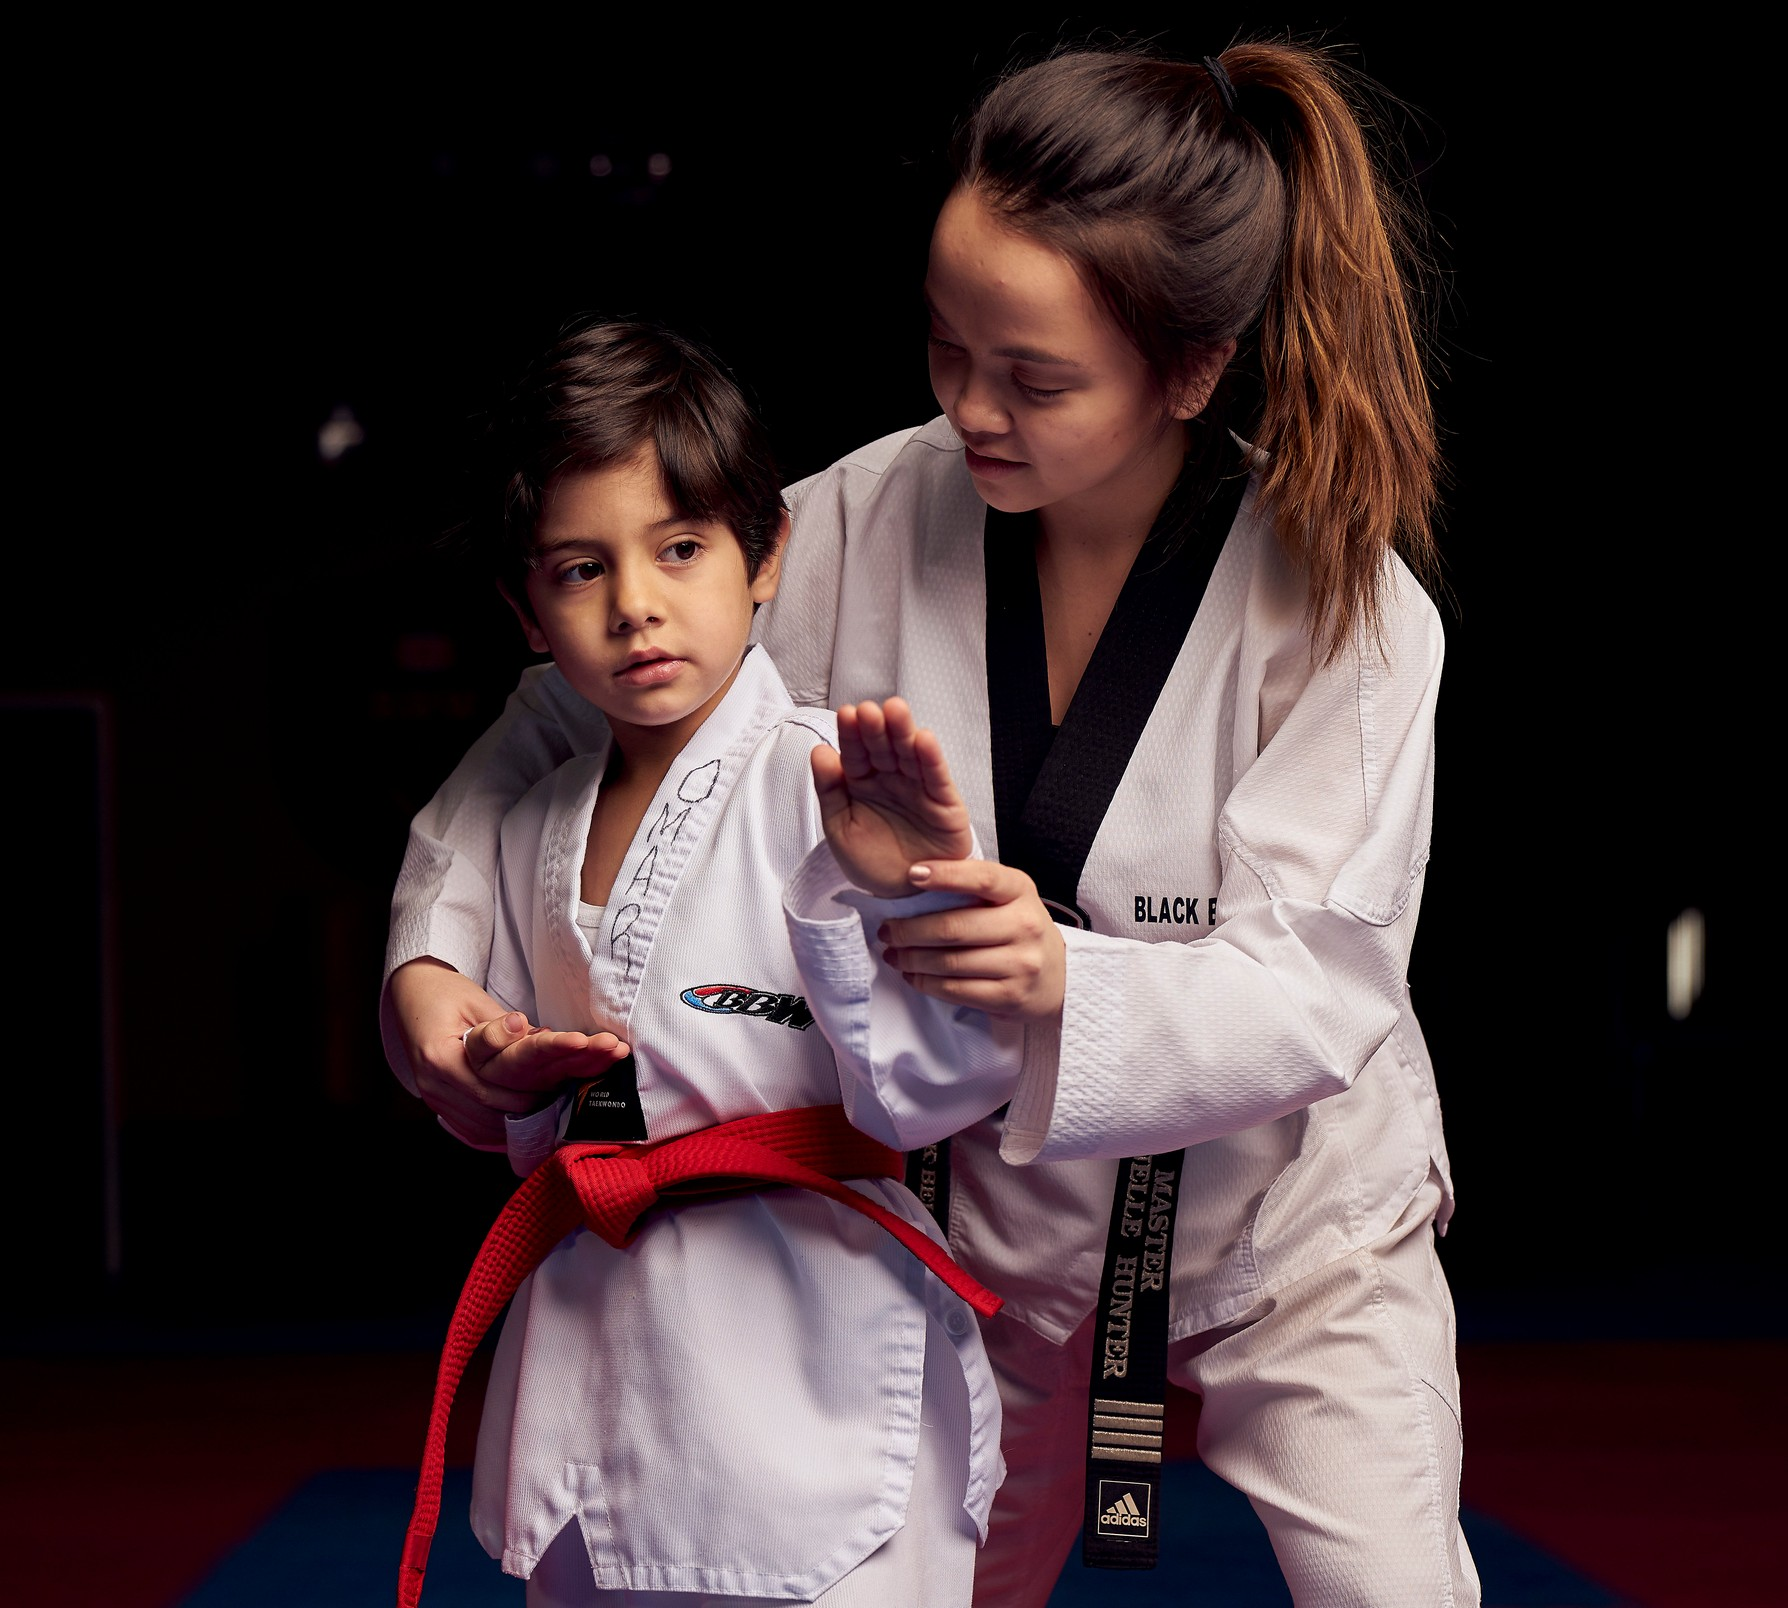 Children Taekwondo Training